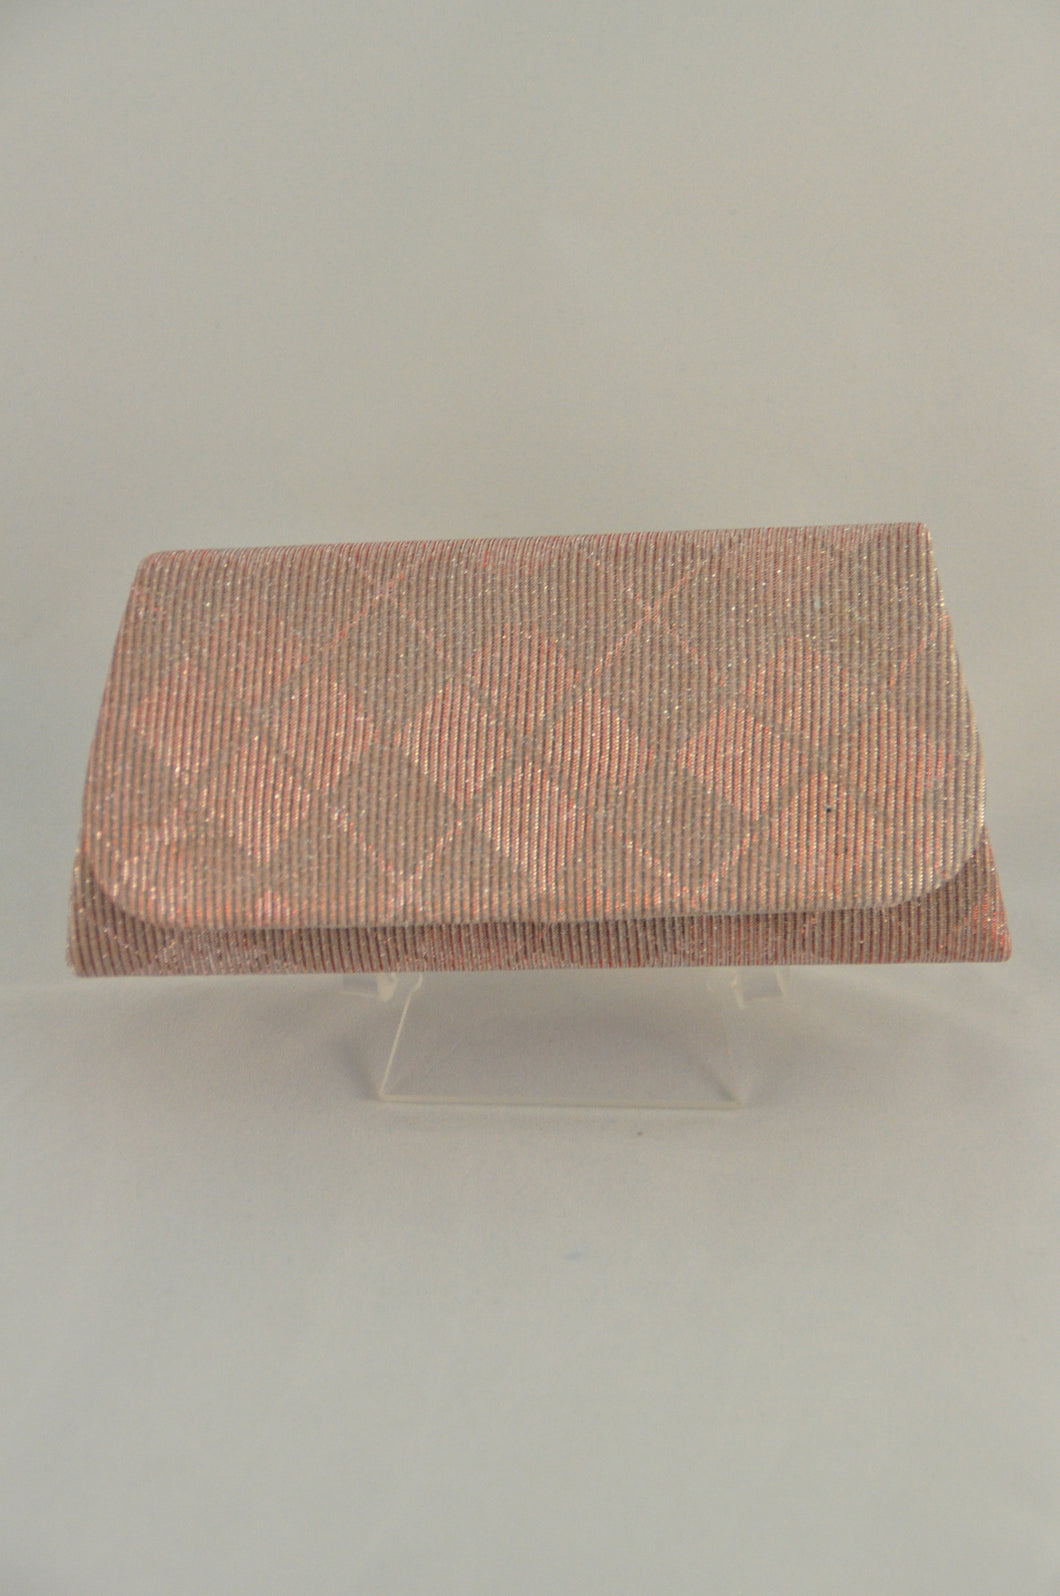 Rose gold clutch in metallic fabric